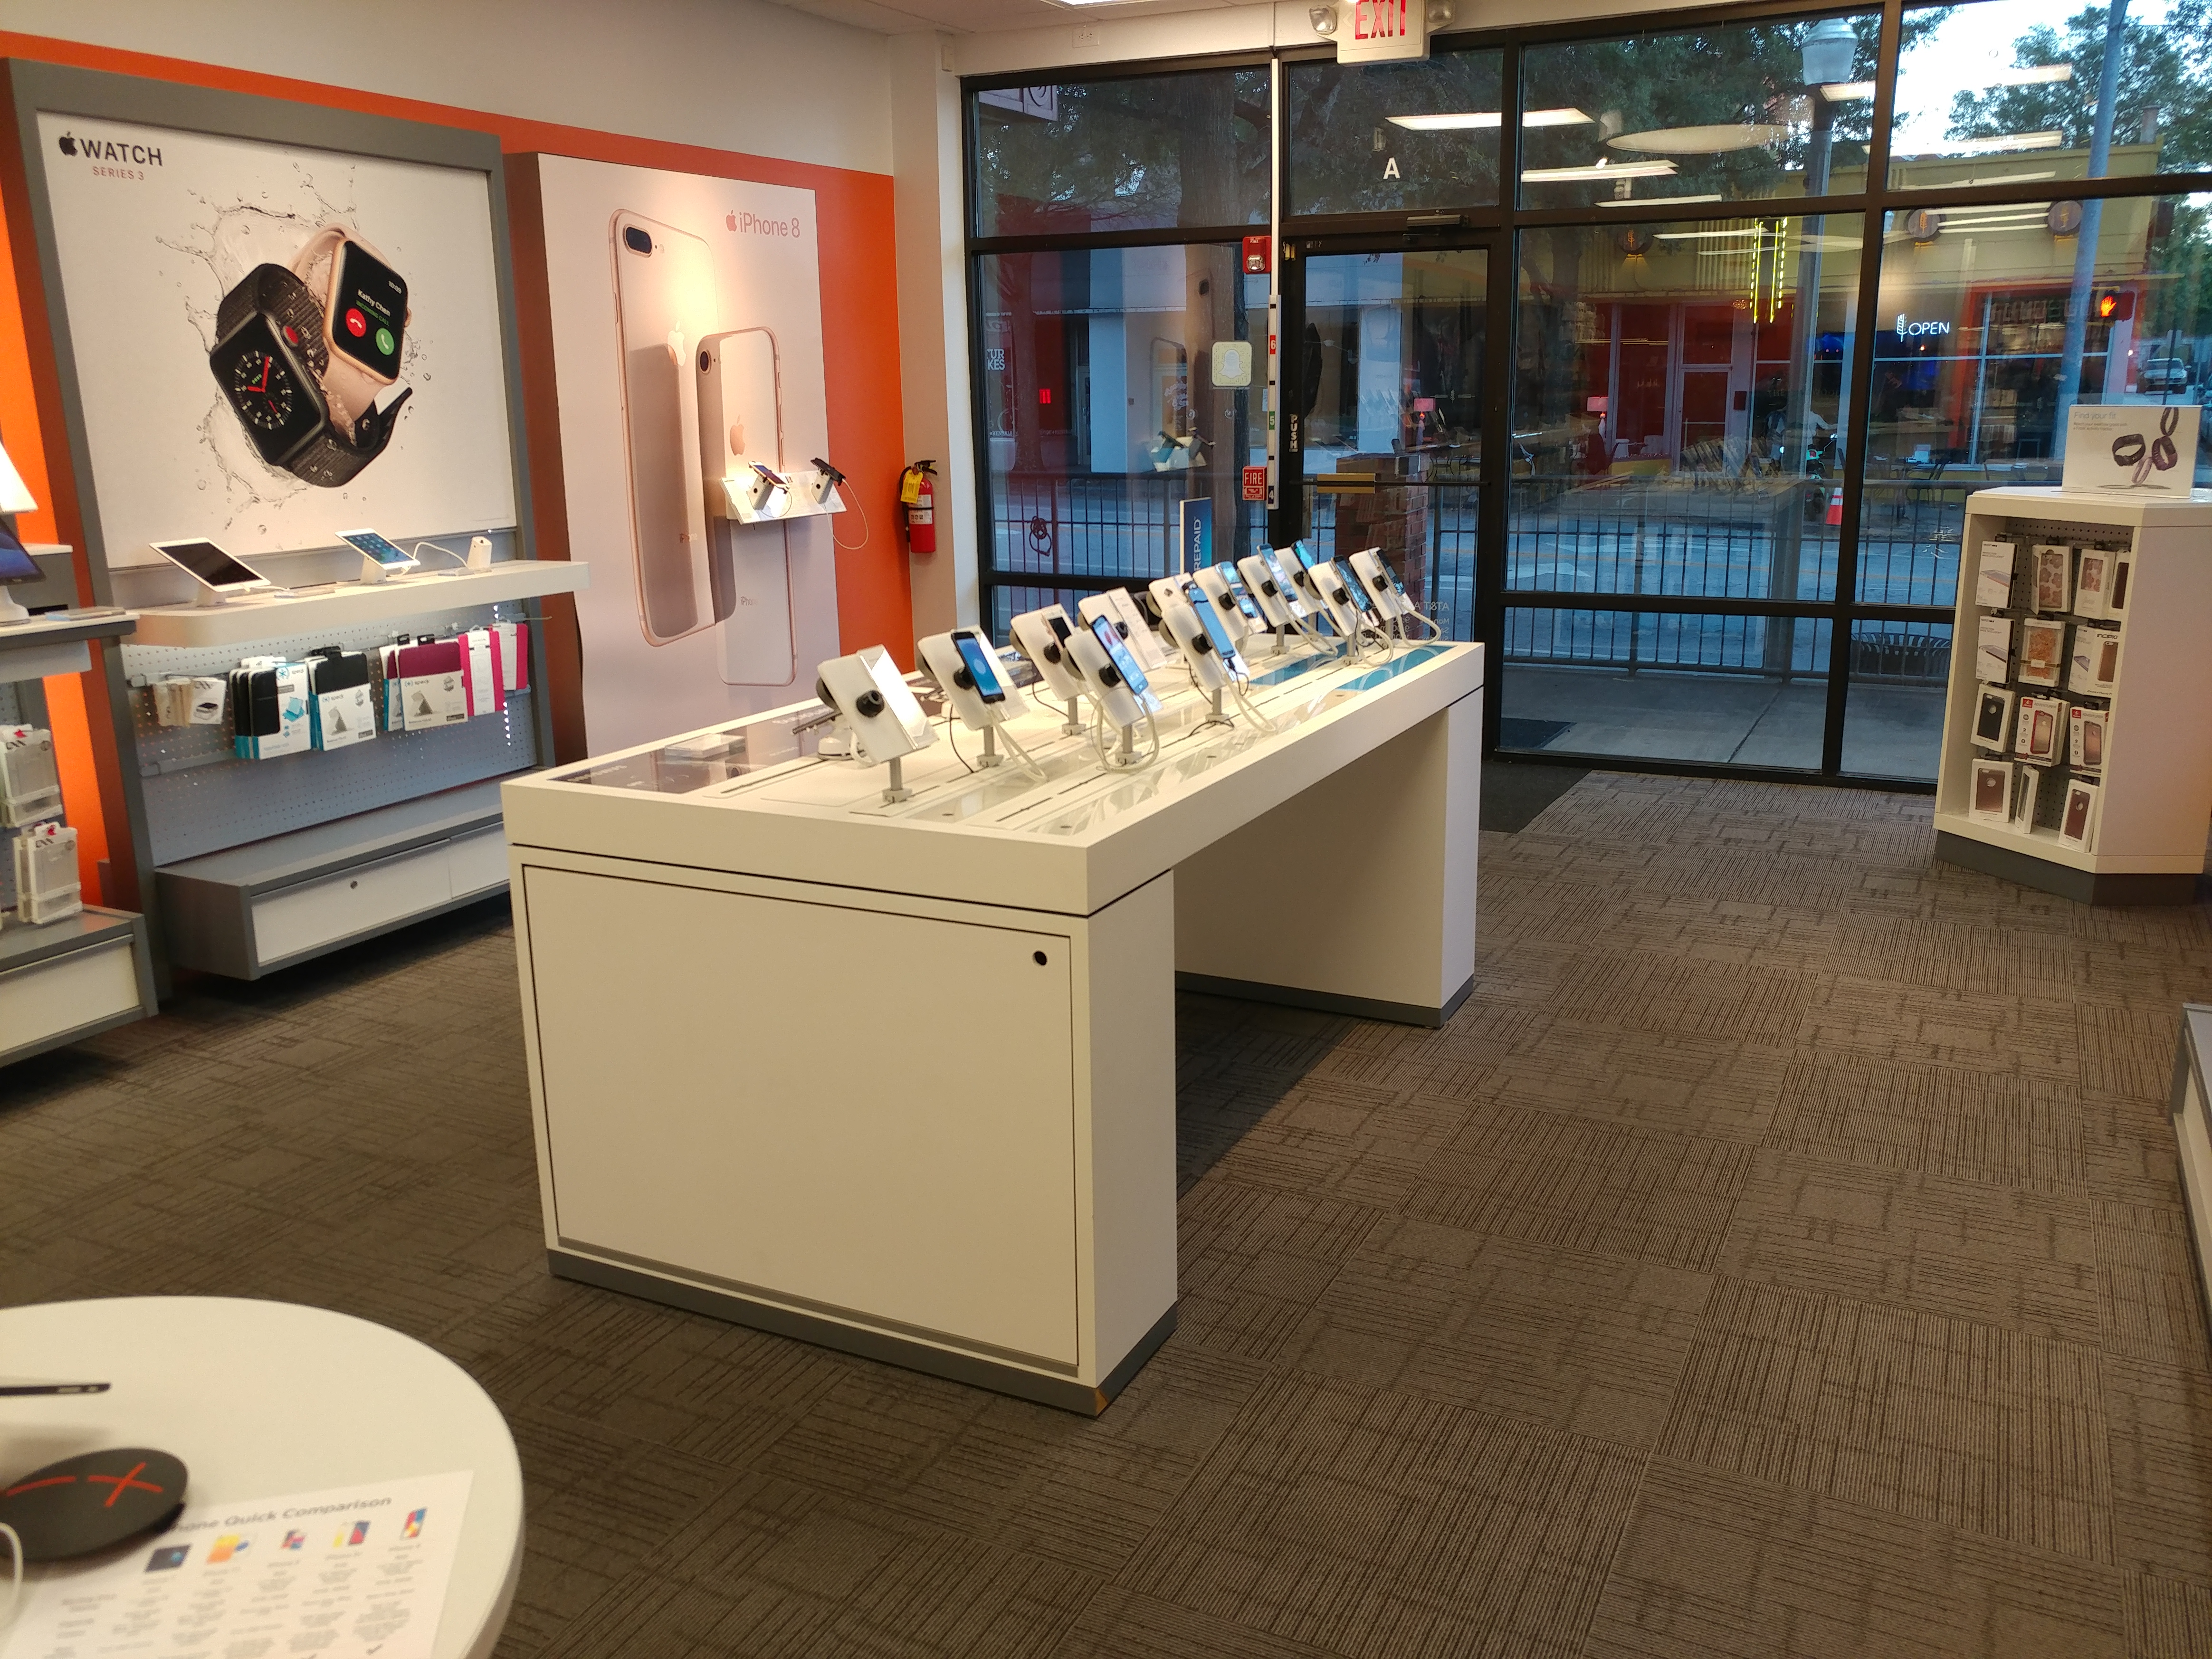 AT&T Store image 2